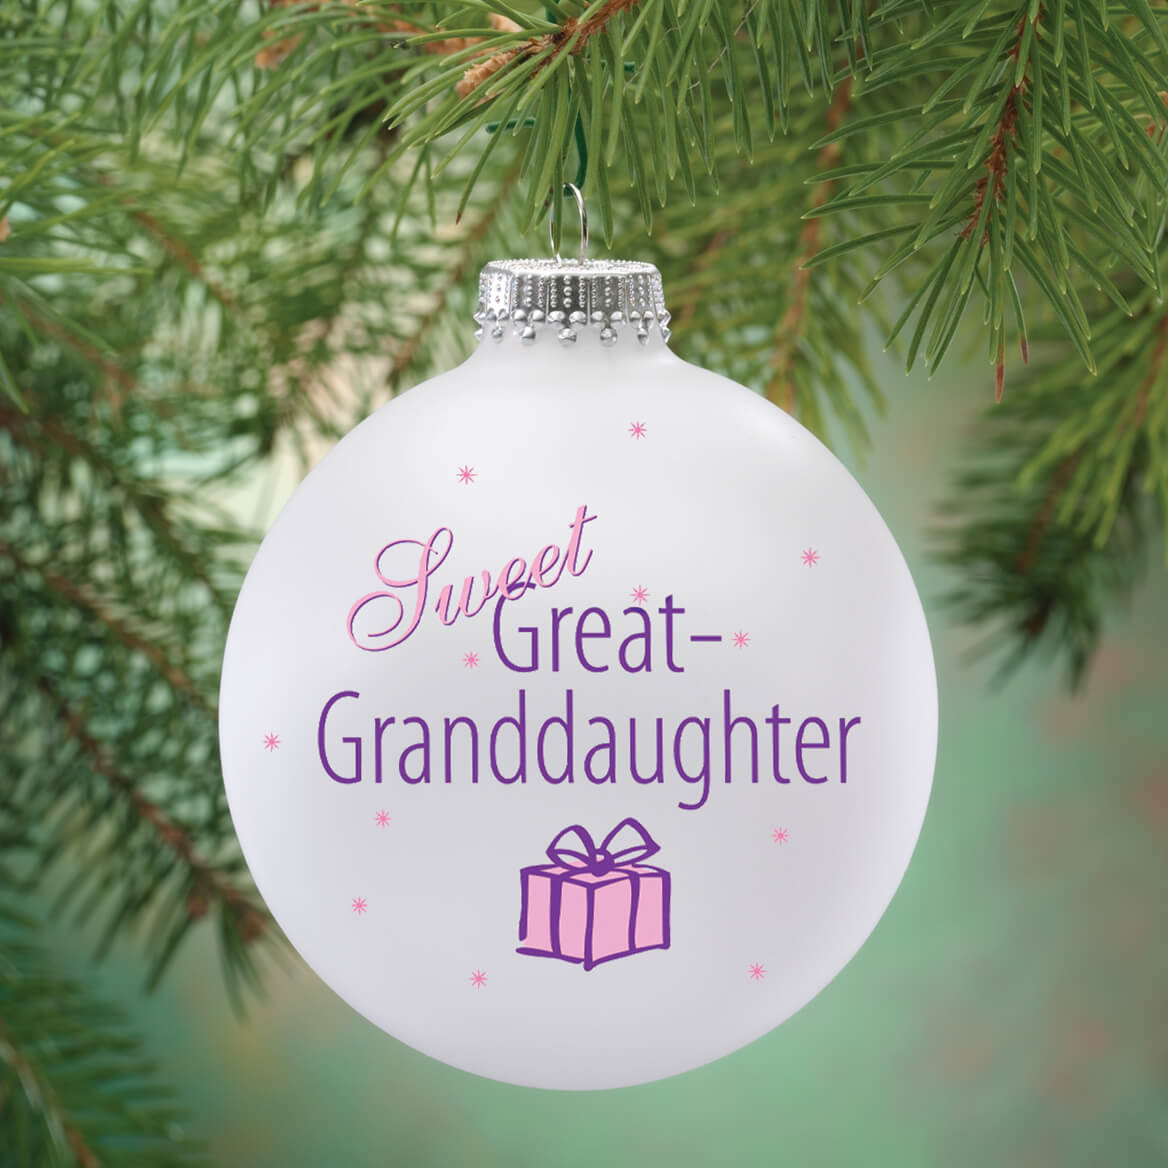 Personalized Sweet Great Granddaughter Ball Ornament - Miles Kimball